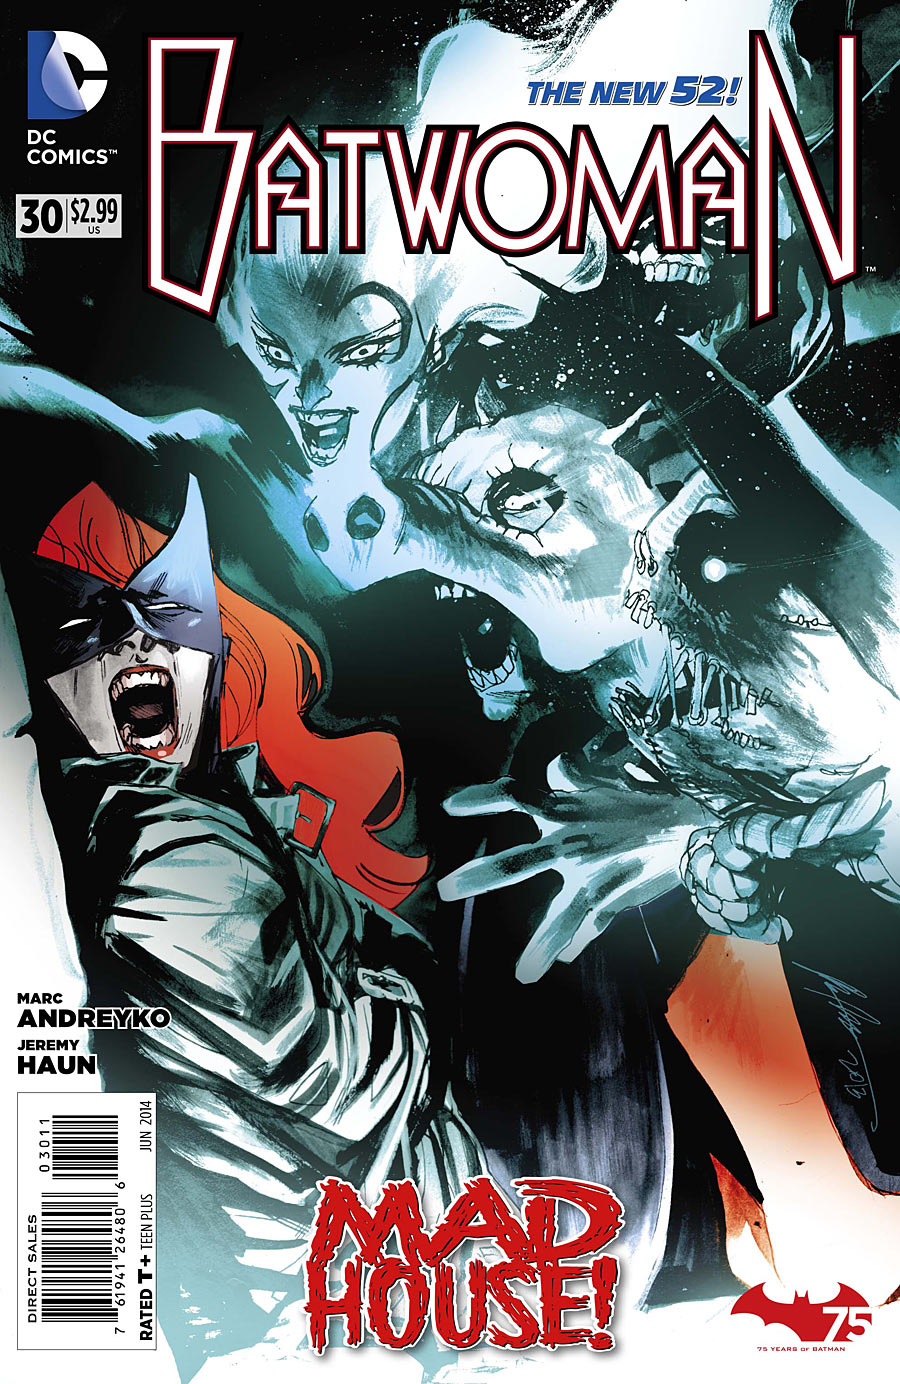 Batwoman (The New 52) #30